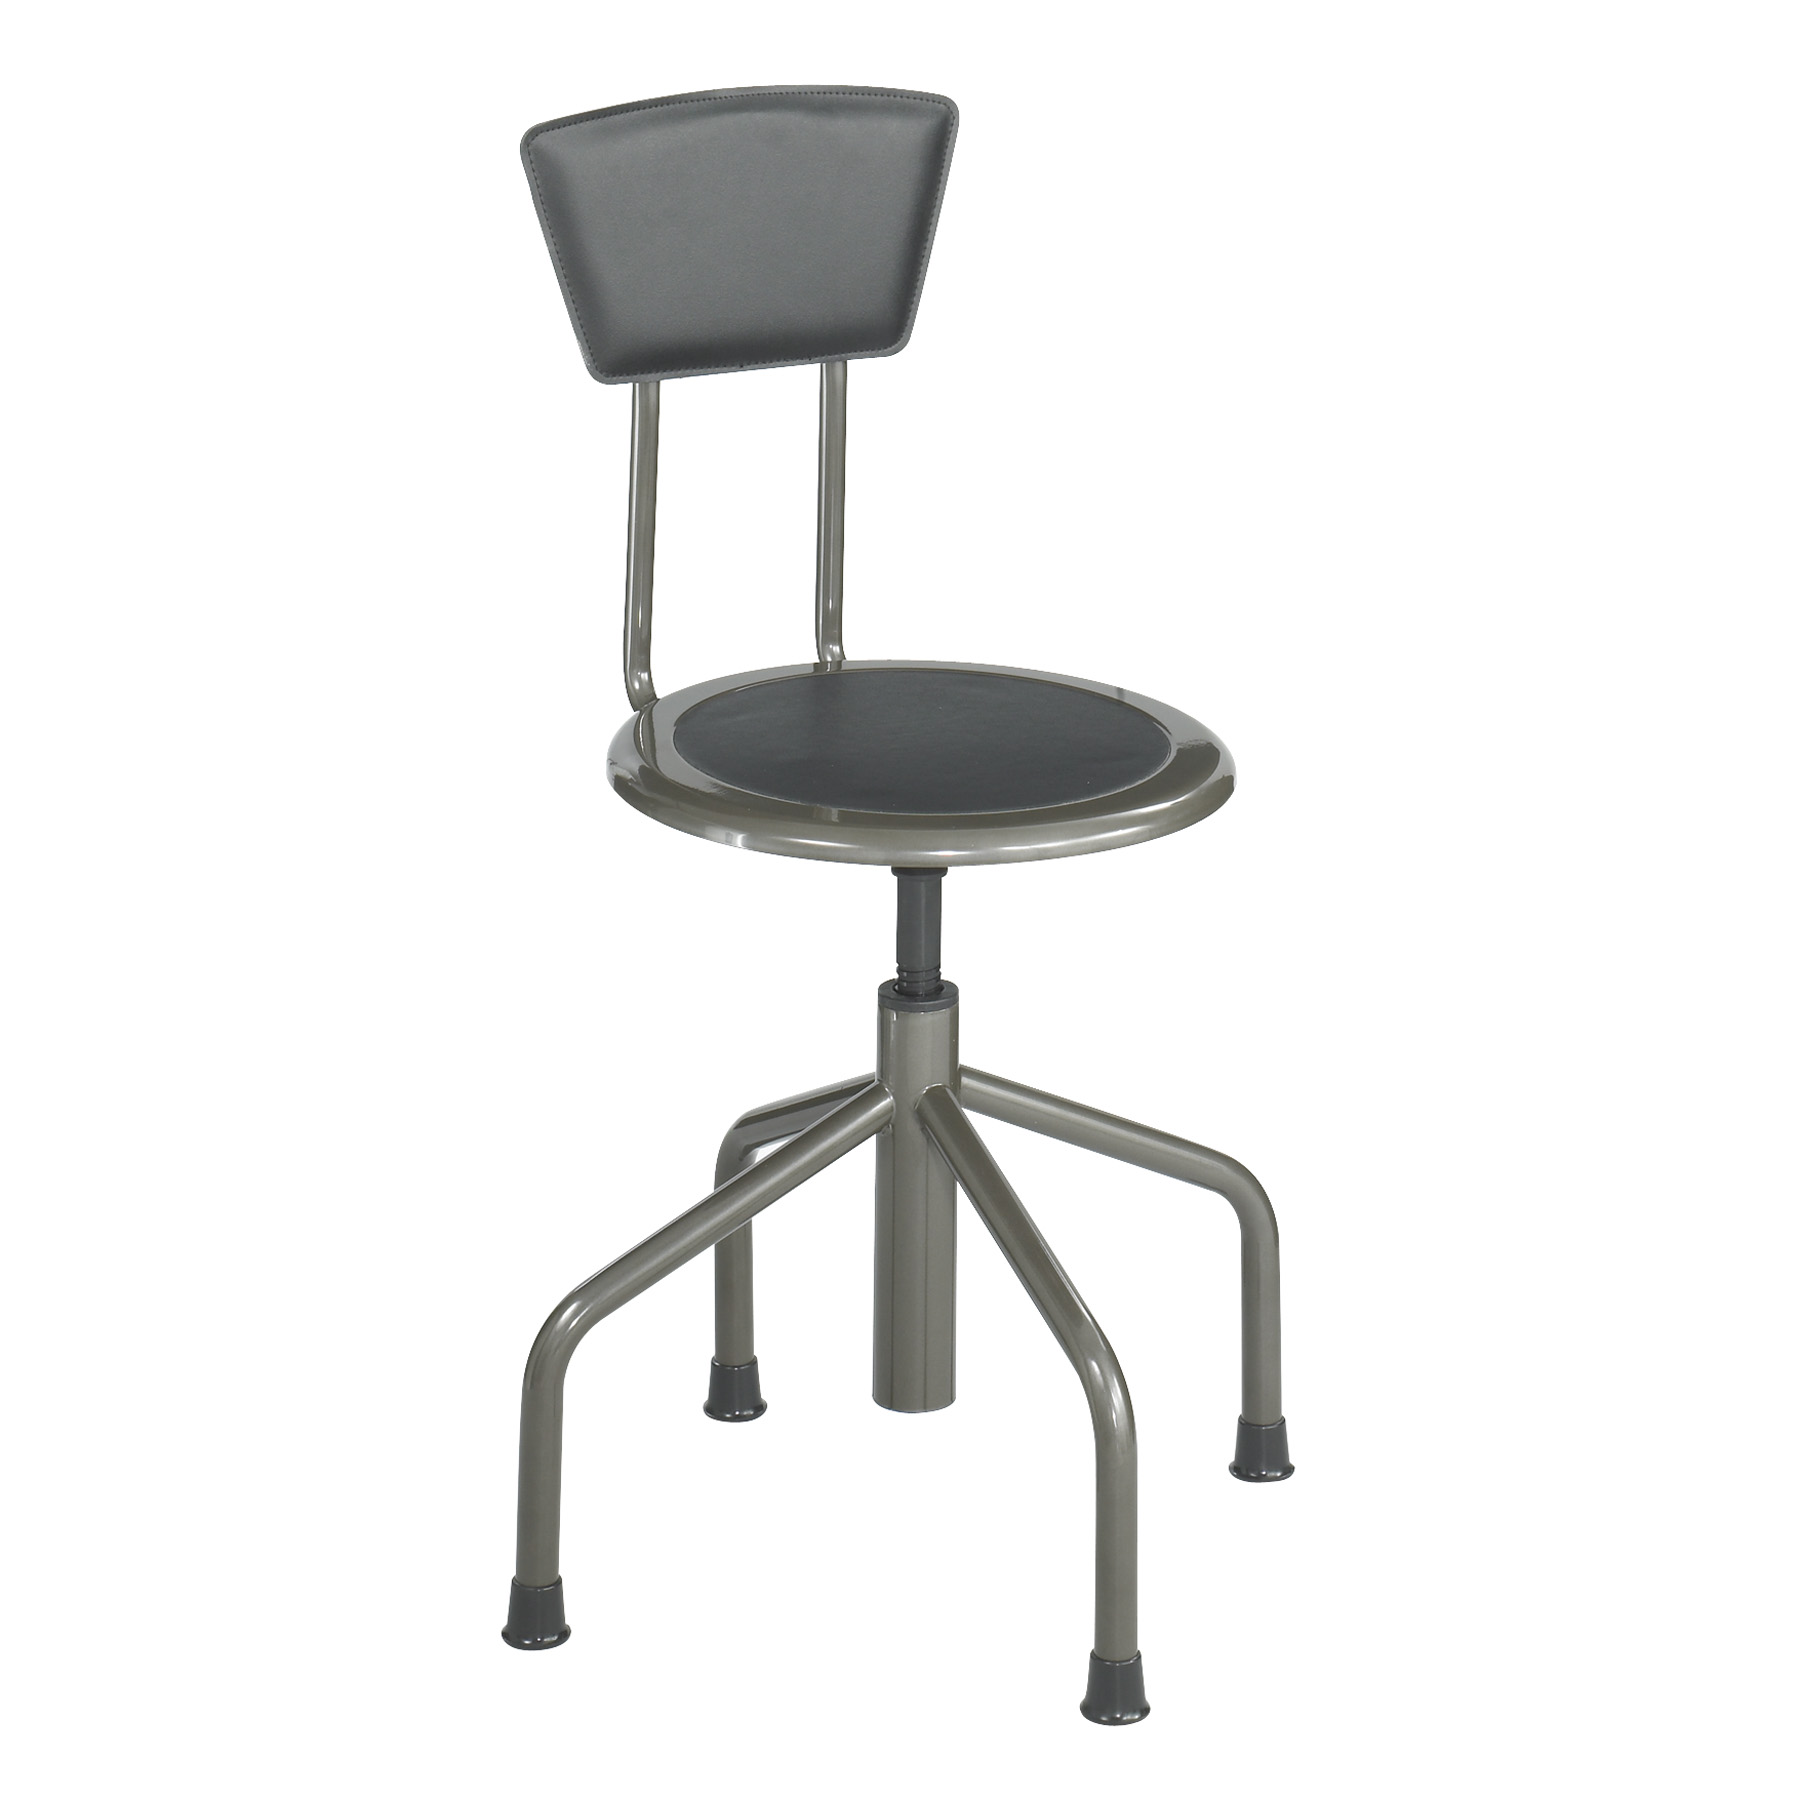 Surprising Safco Diesel Industrial Stool With Back Squirreltailoven Fun Painted Chair Ideas Images Squirreltailovenorg